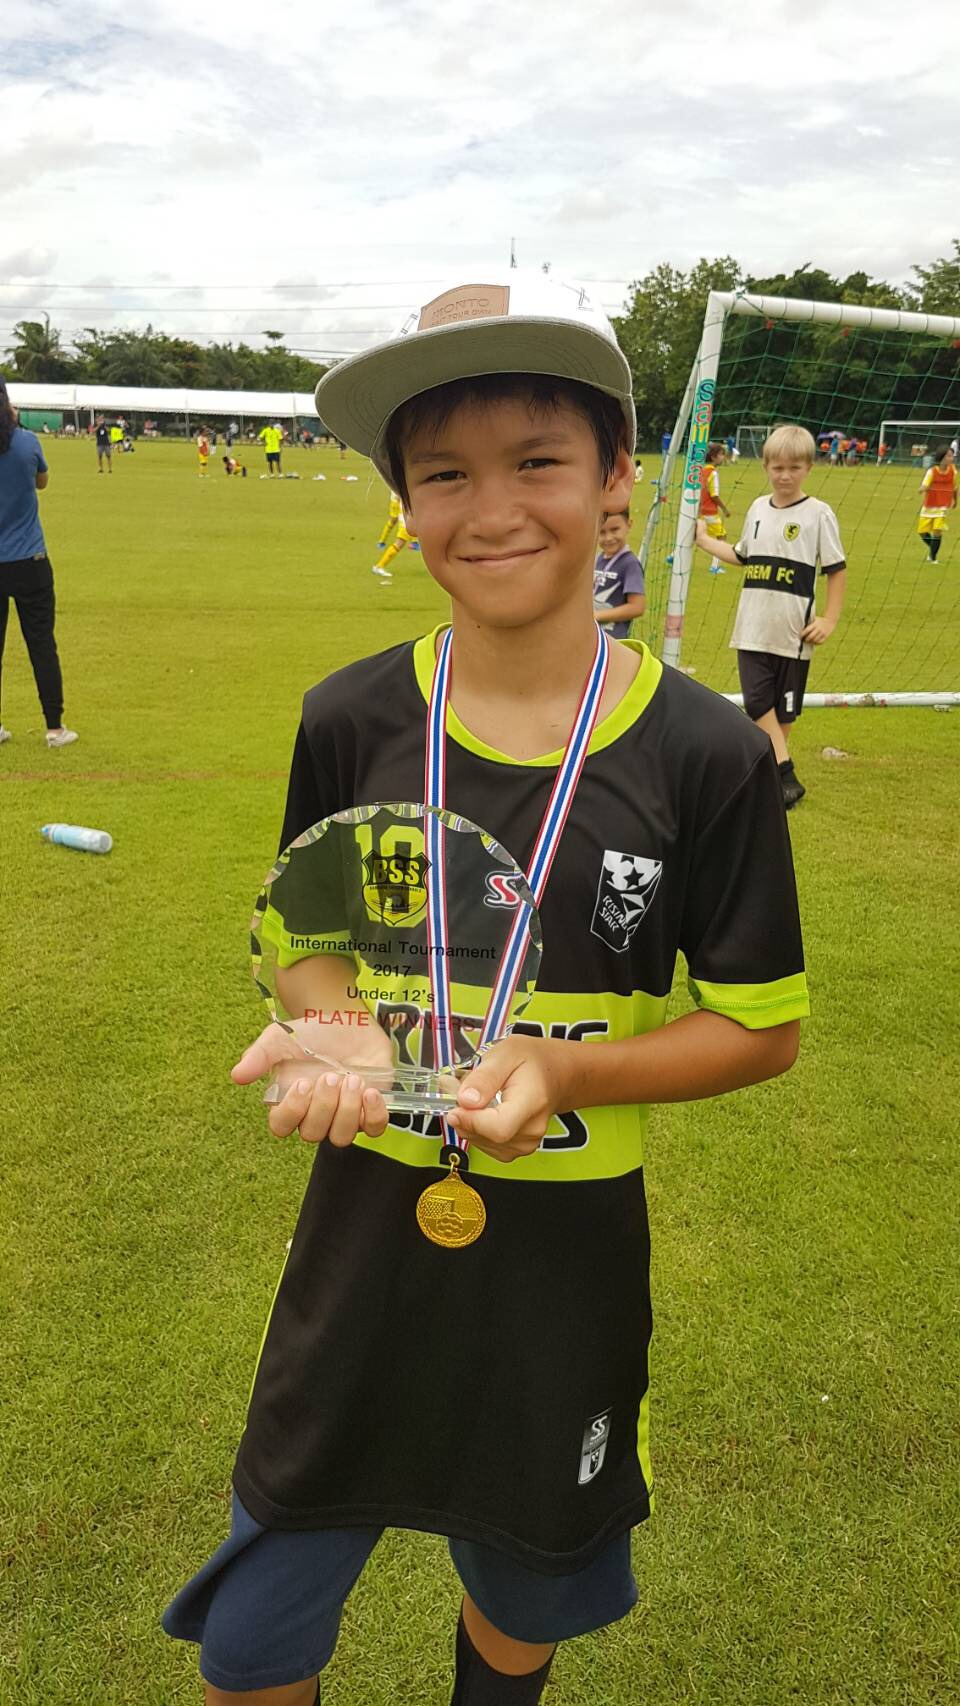 Panyaden student Din with his soccer medal